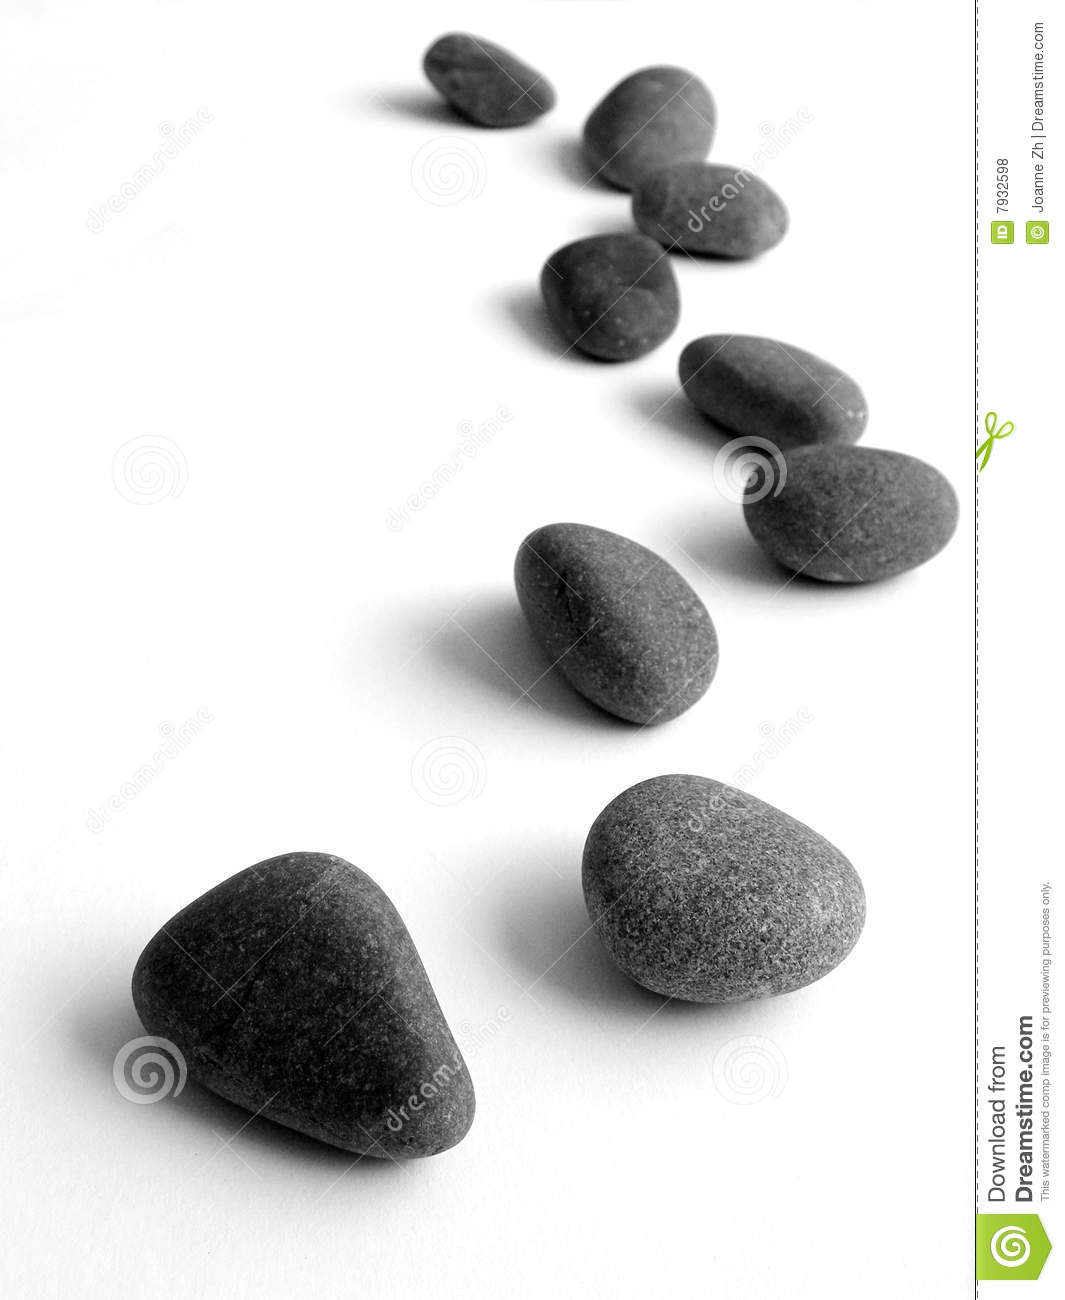 Stepping stones isolated